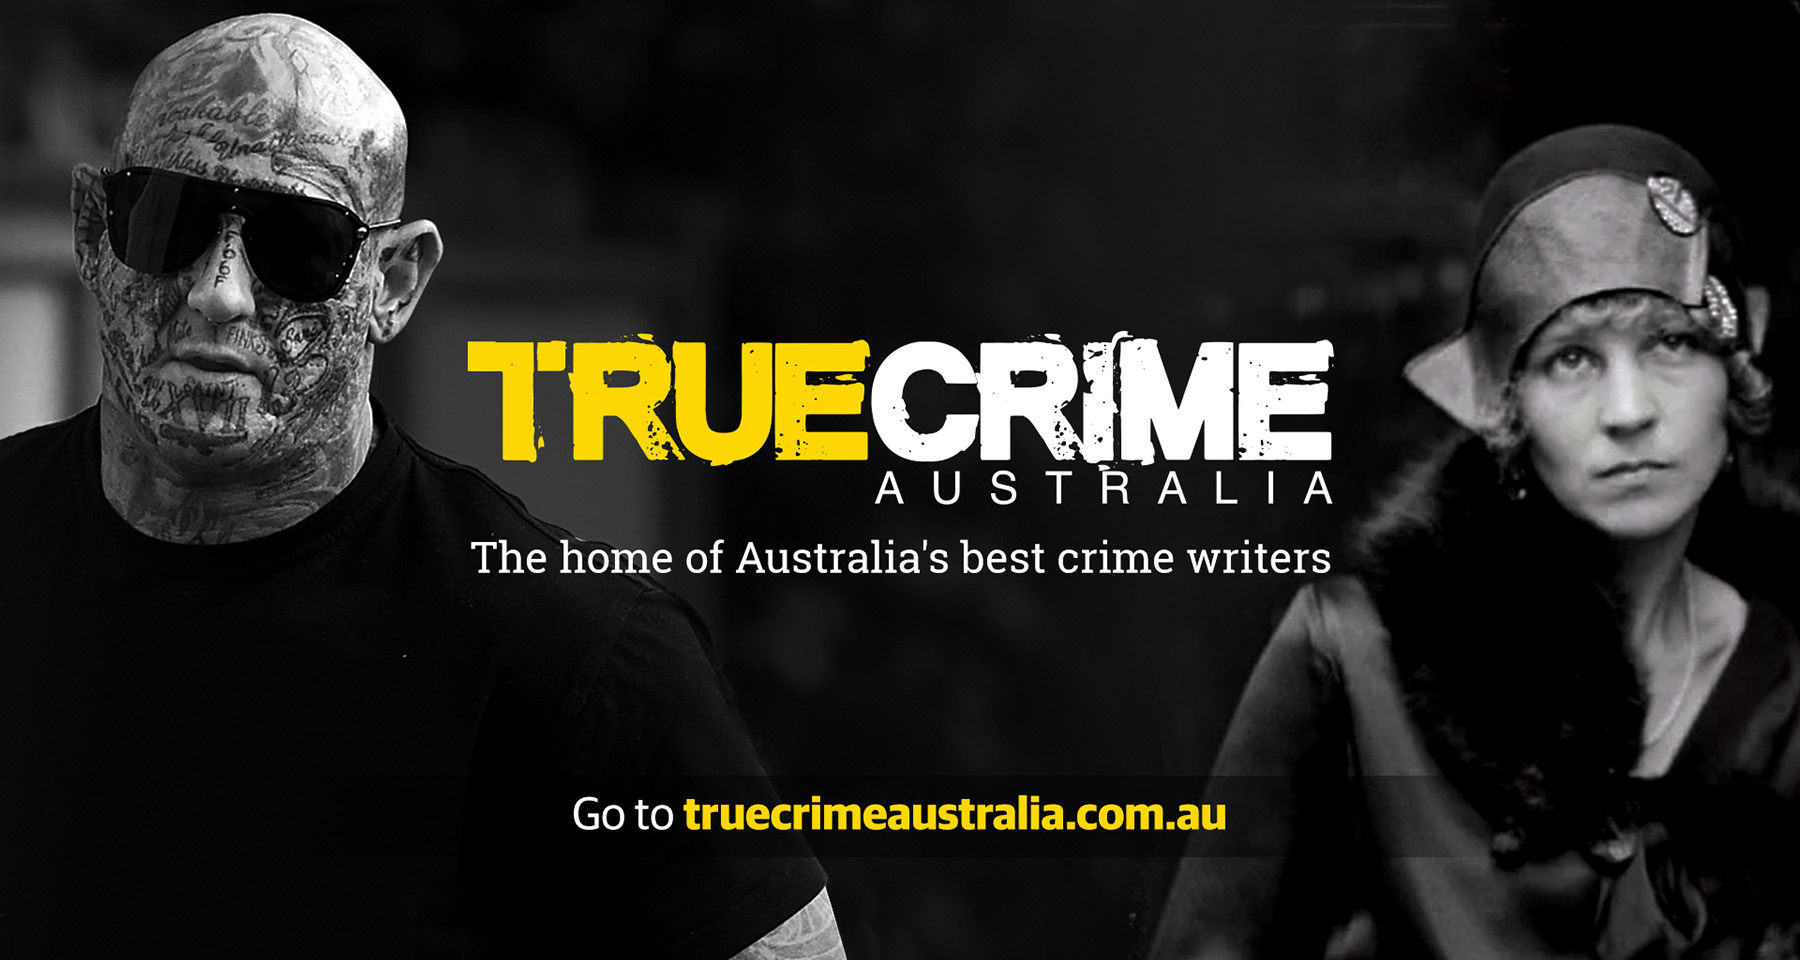 News Corp Australia grows digital subscriptions with crime storytelling brand